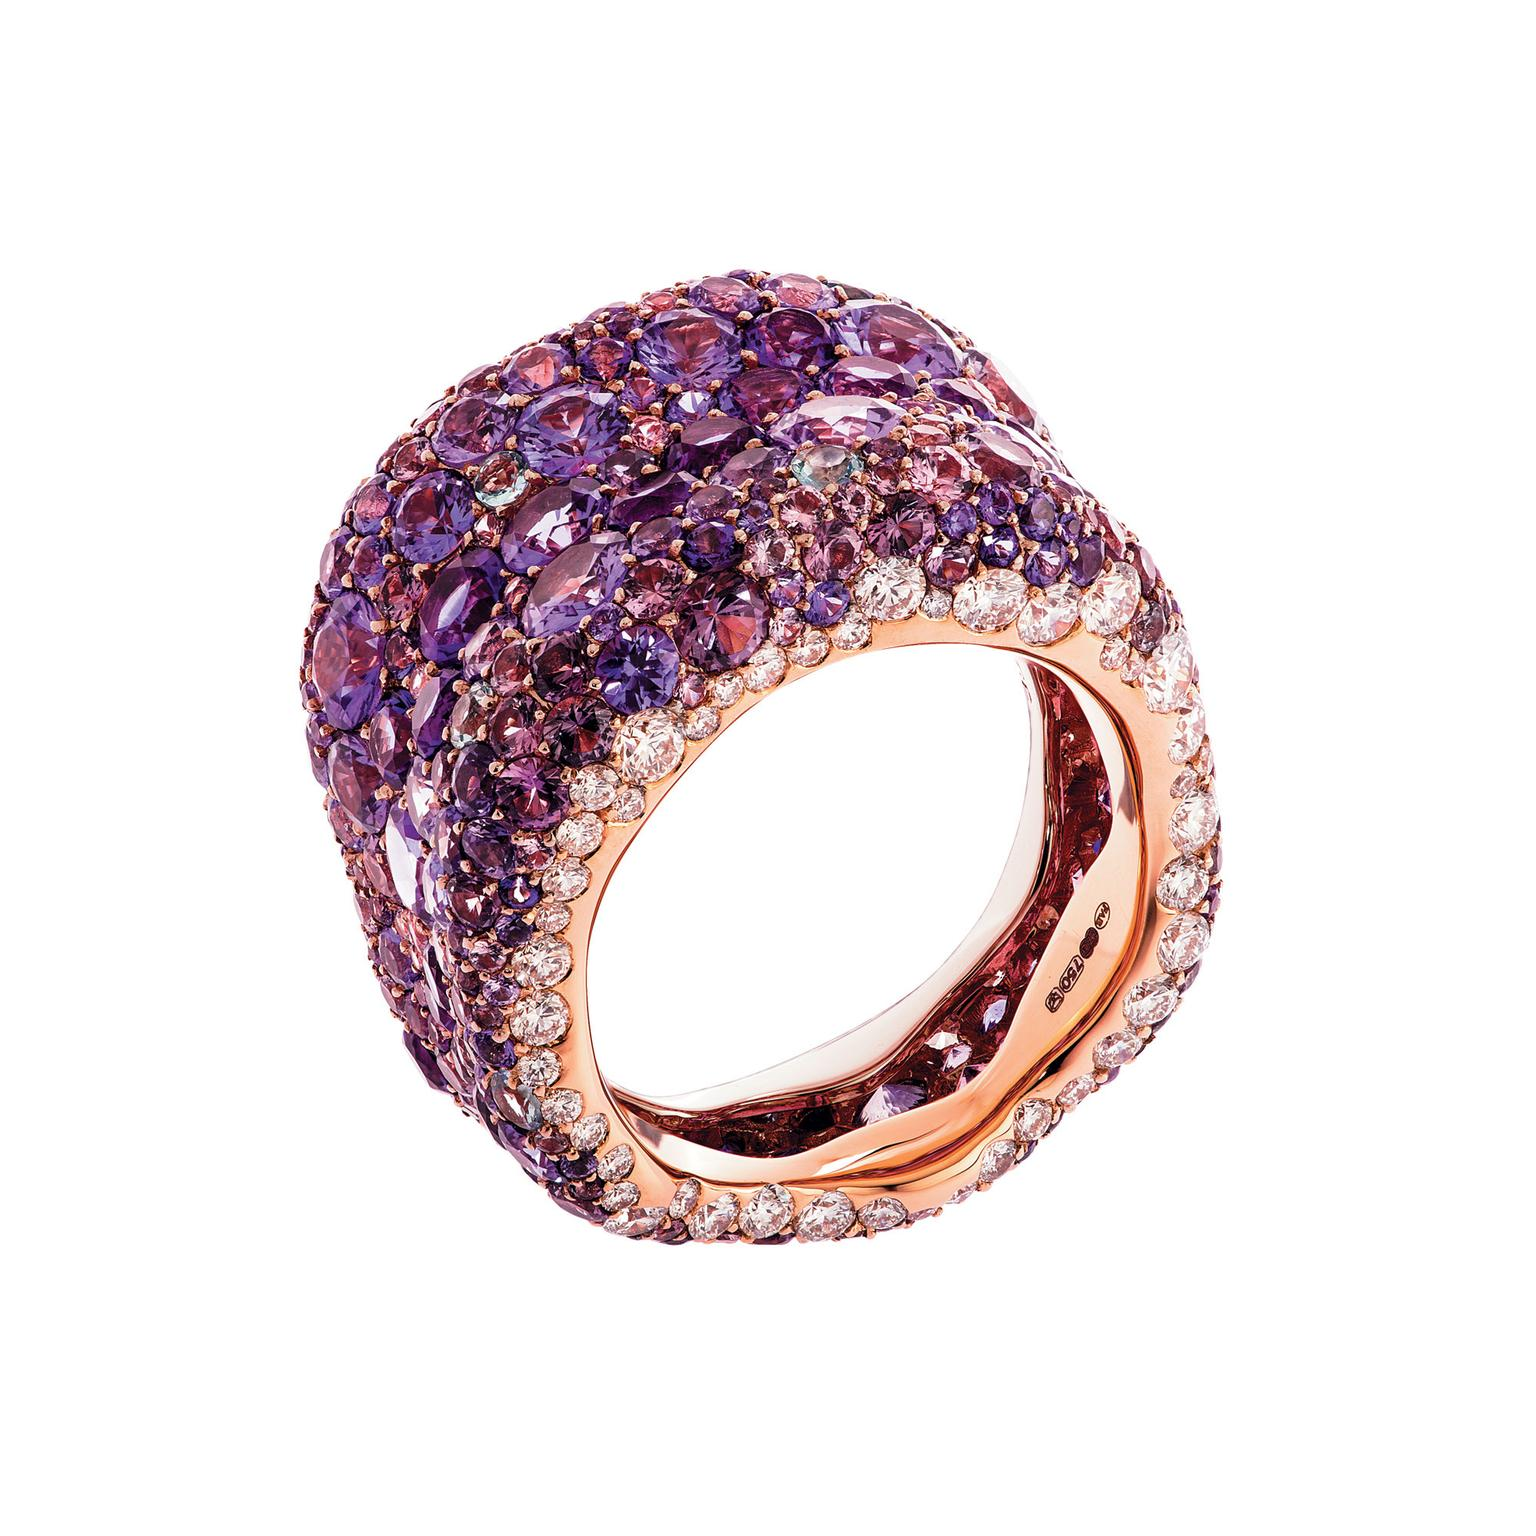 Fabergé Emotion Purple ring